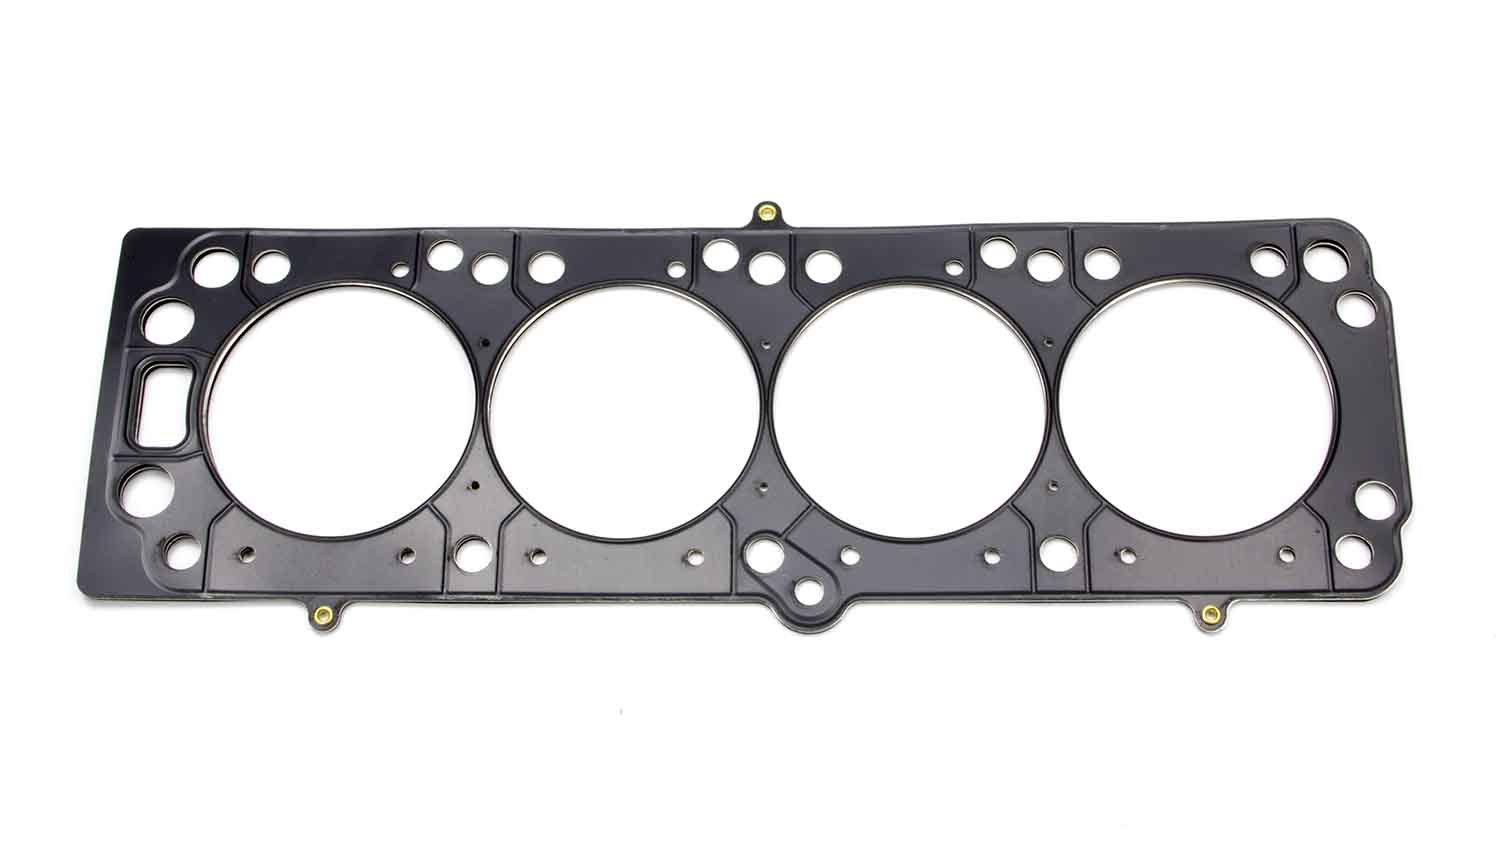 Cometic Gaskets C4216-051 Cylinder Head Gasket, 88.0 mm Bore, 0.051 in Compression Thickness, Multi-Layered Steel, 2.0 L, DOHC Opel / Vauxhall, Each